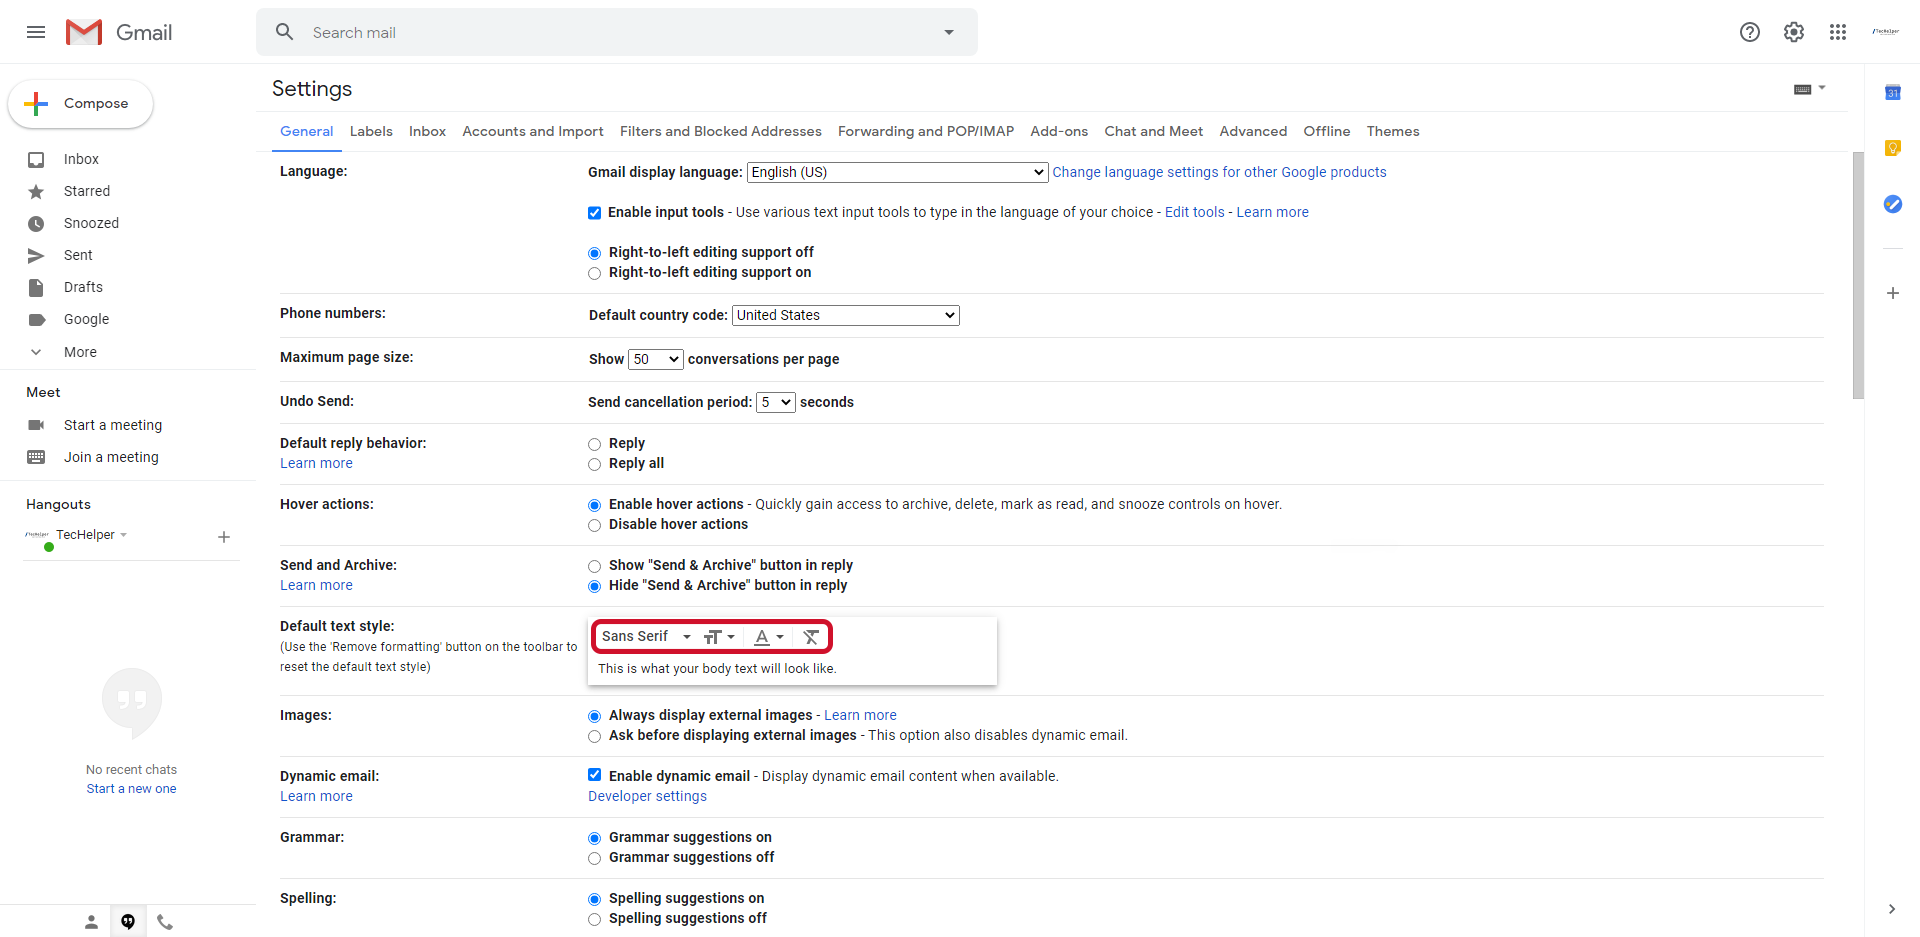 gmail default text style step 3